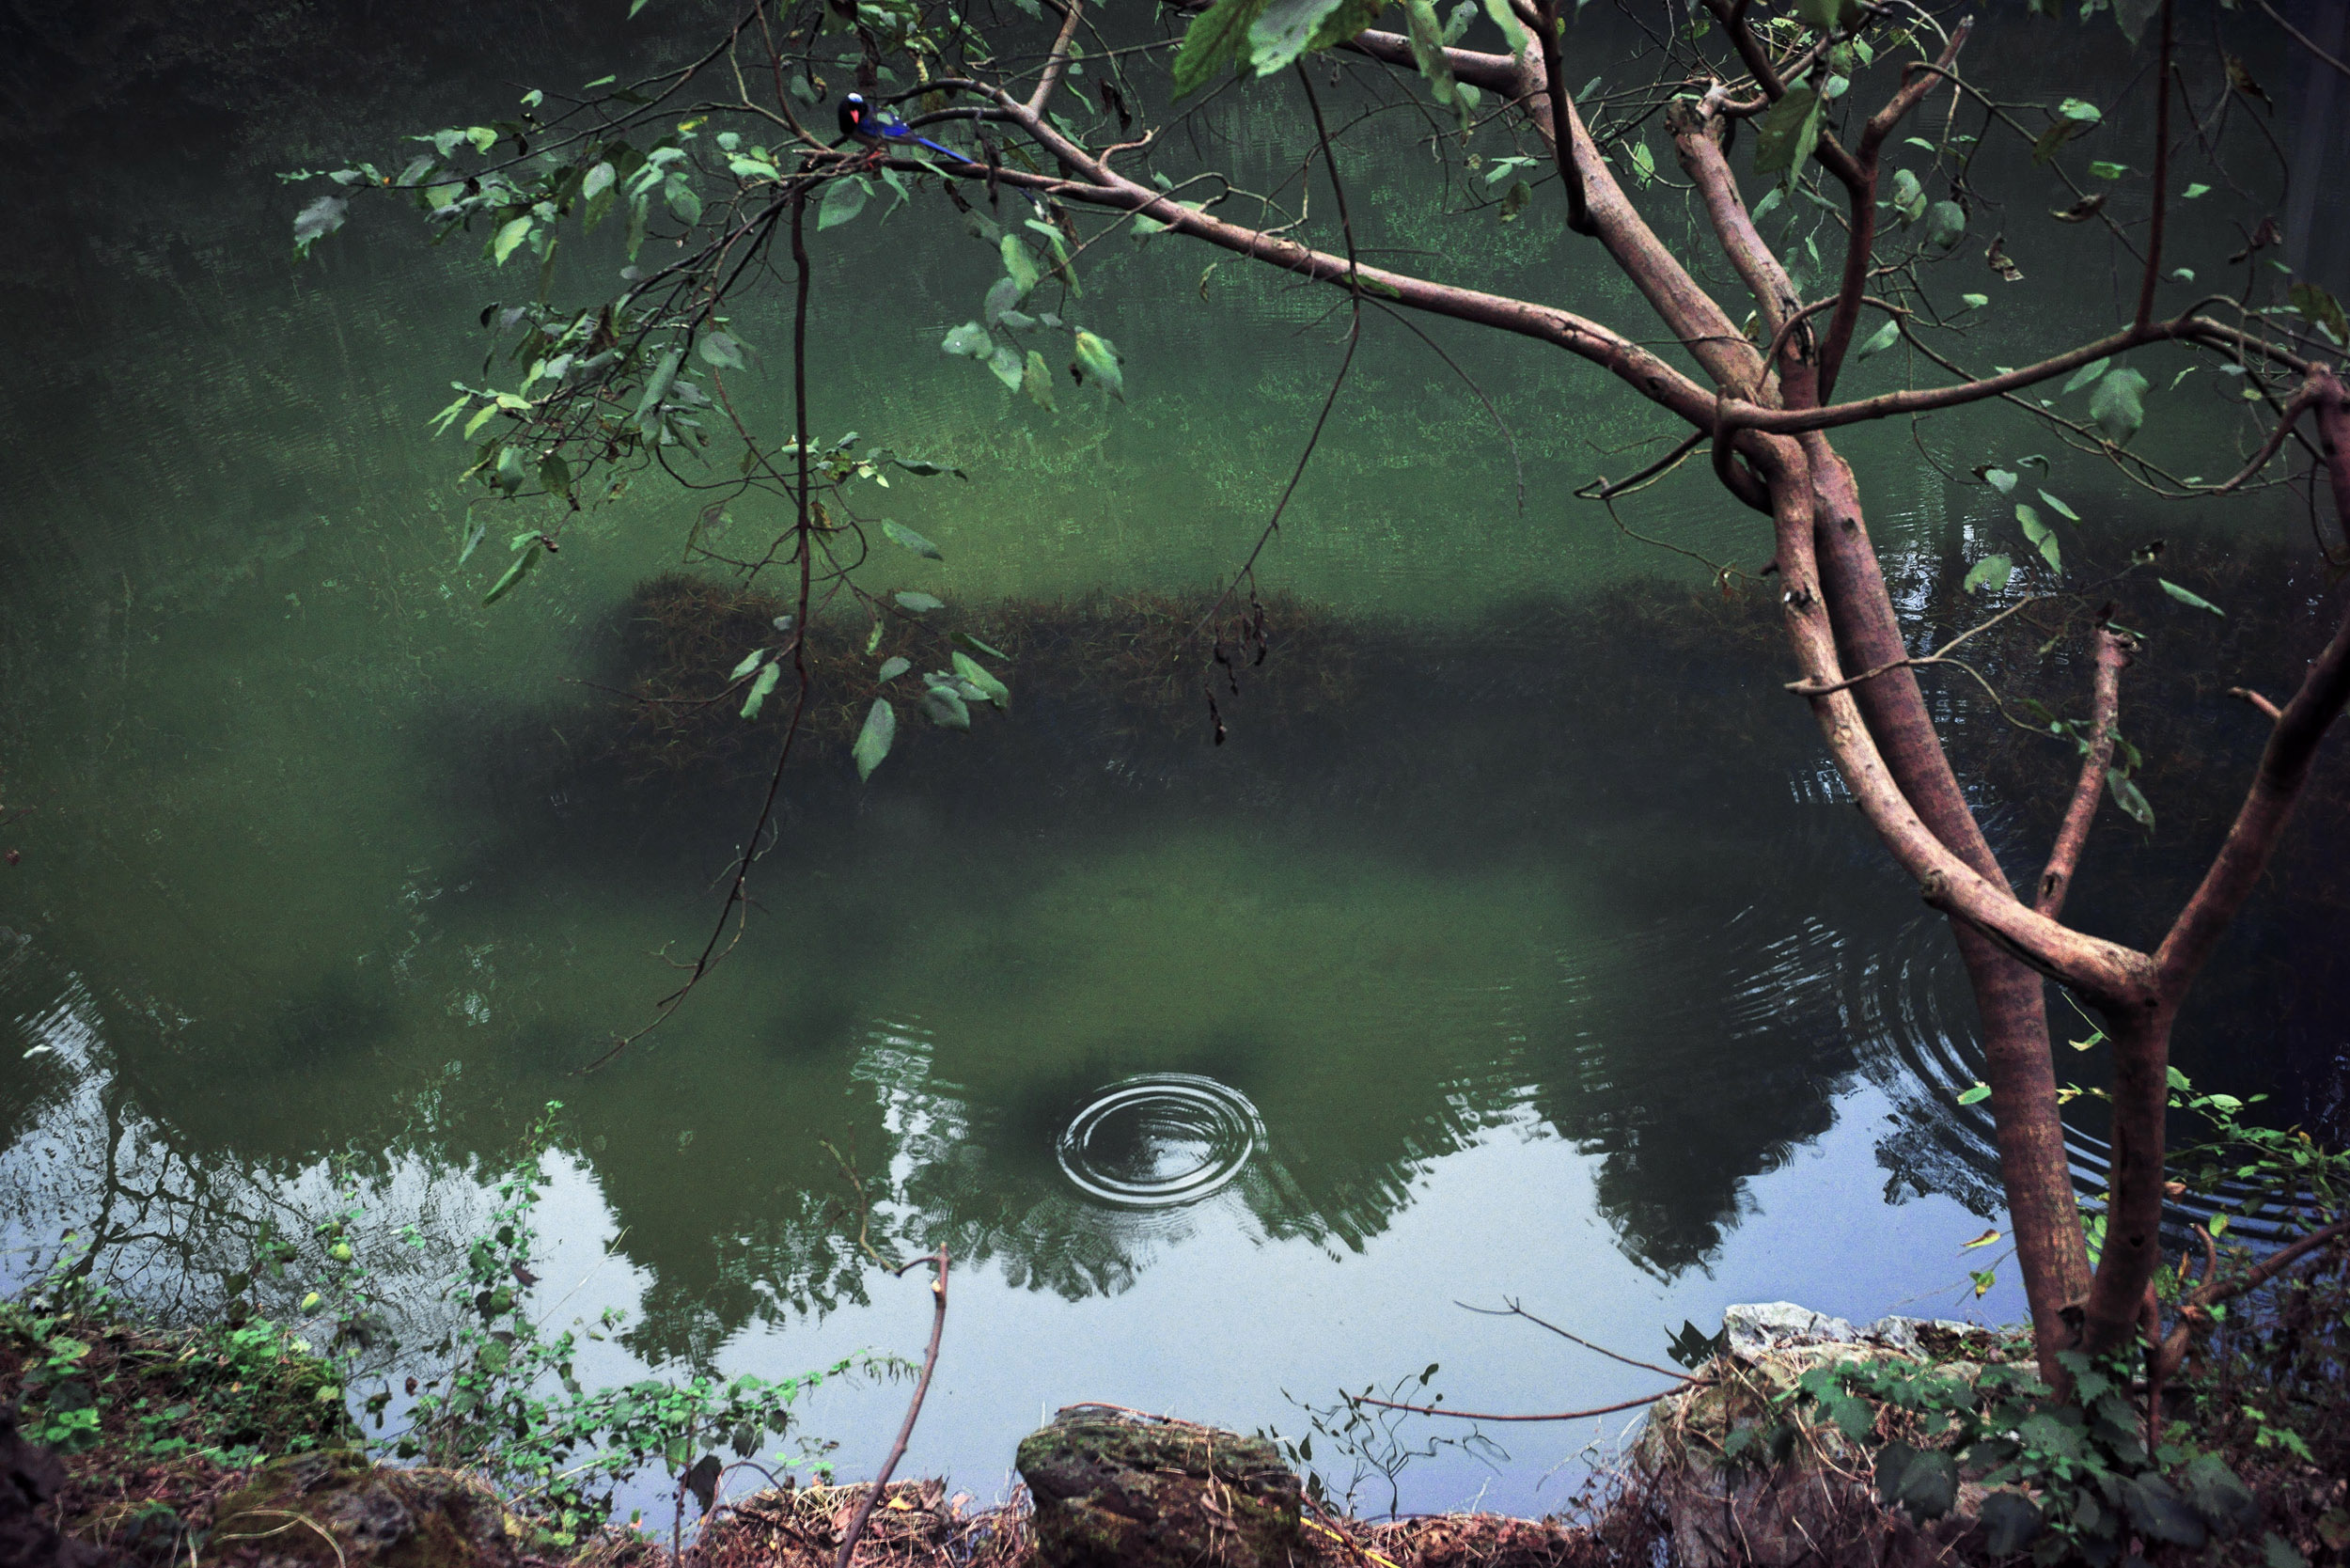 shen-wei-between-blossoms-photography-of-china-ripples.jpg